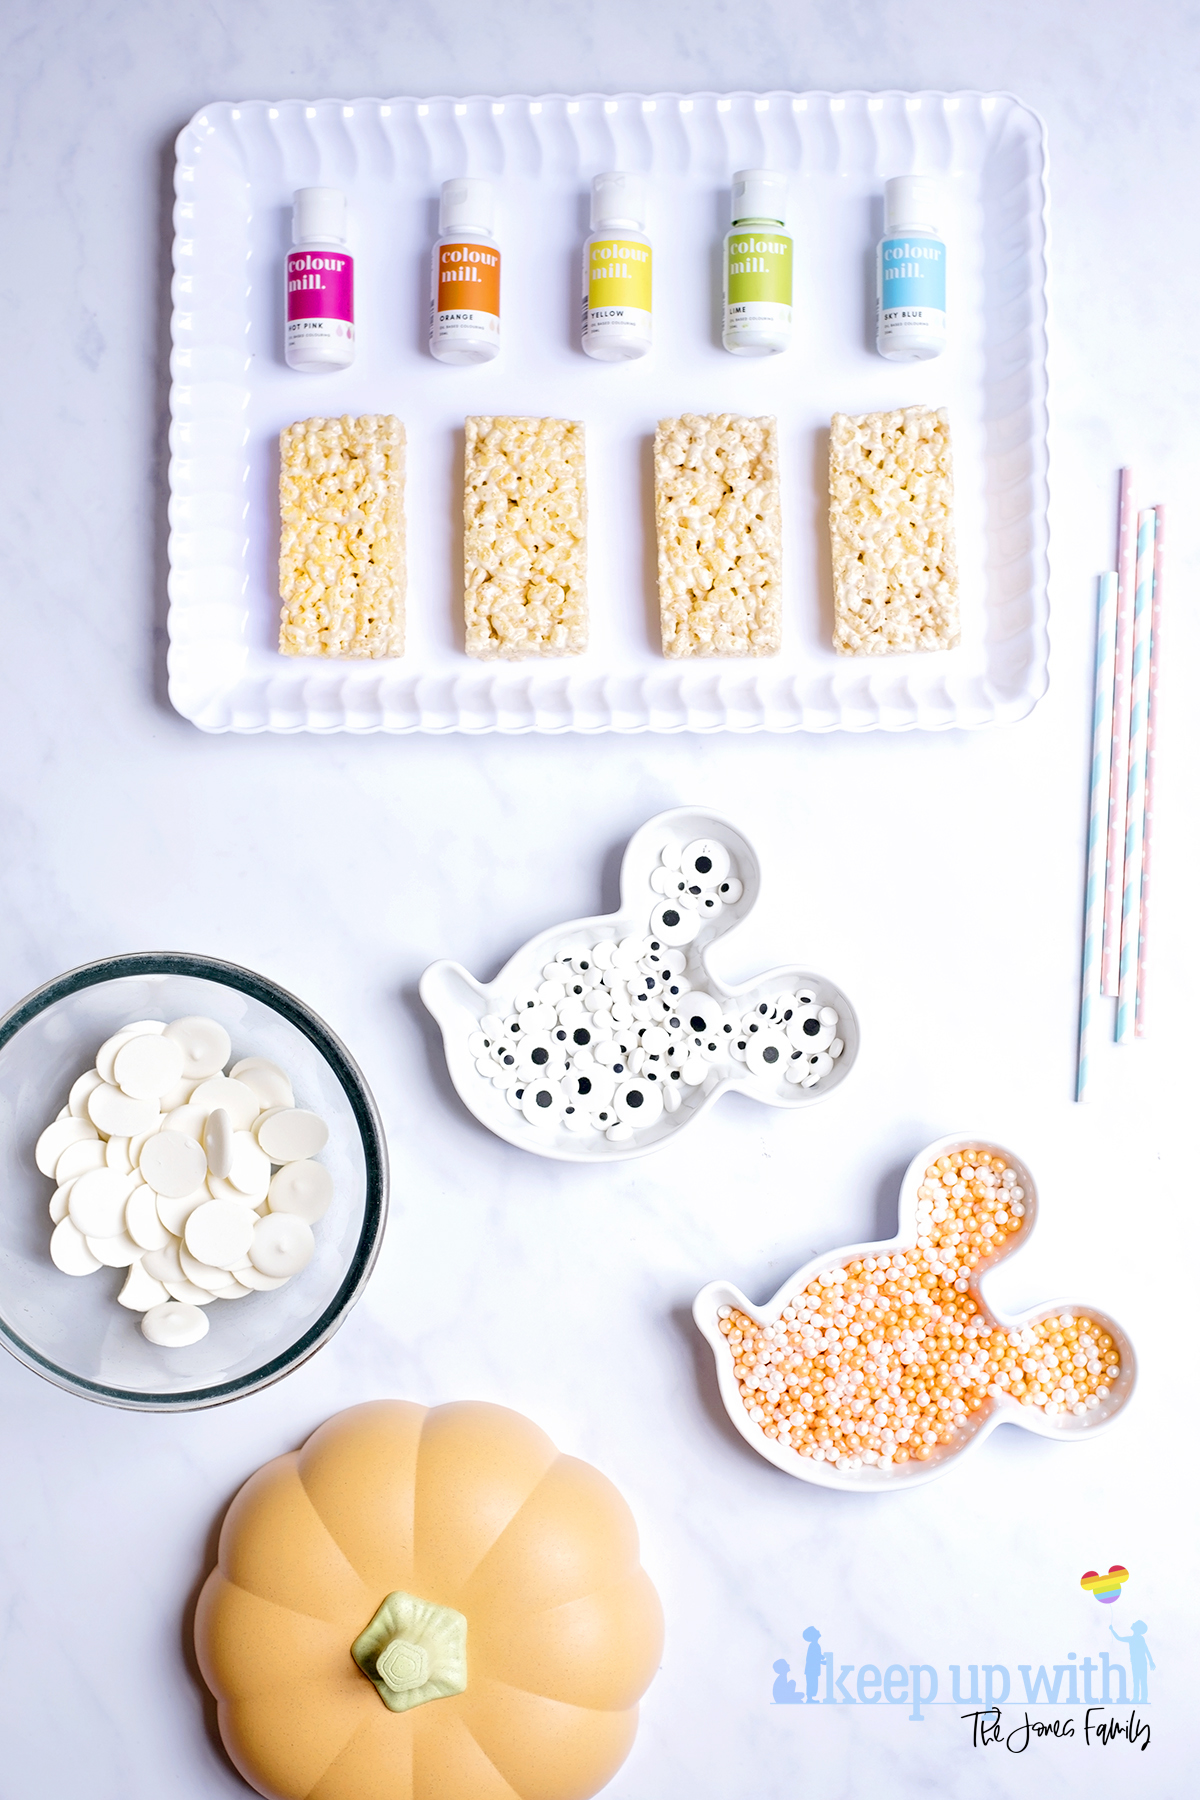 Image shows the ingredients needed to make rice krispie pastel aliens and rice krispie monsters. Image by Sara-Jayne from Keep Up With The Jones Family